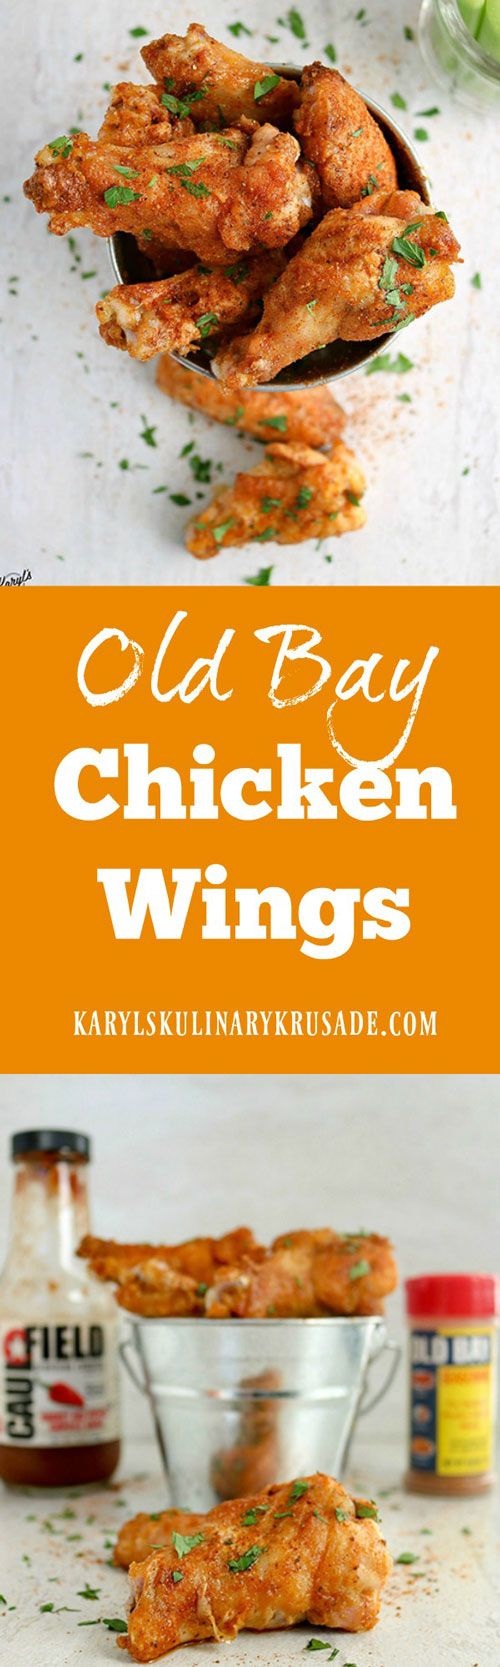 Old Bay Chicken Wings are a fabulous way to bring a little bit of Maryland into your life. The delicious blend of seasonings will wake up your taste buds! #chicken #wings #appetizer #partyfood #tailgate #gameday #spicy #oldbay #caulfieldprovisioncompany #karylskulinarykrusade